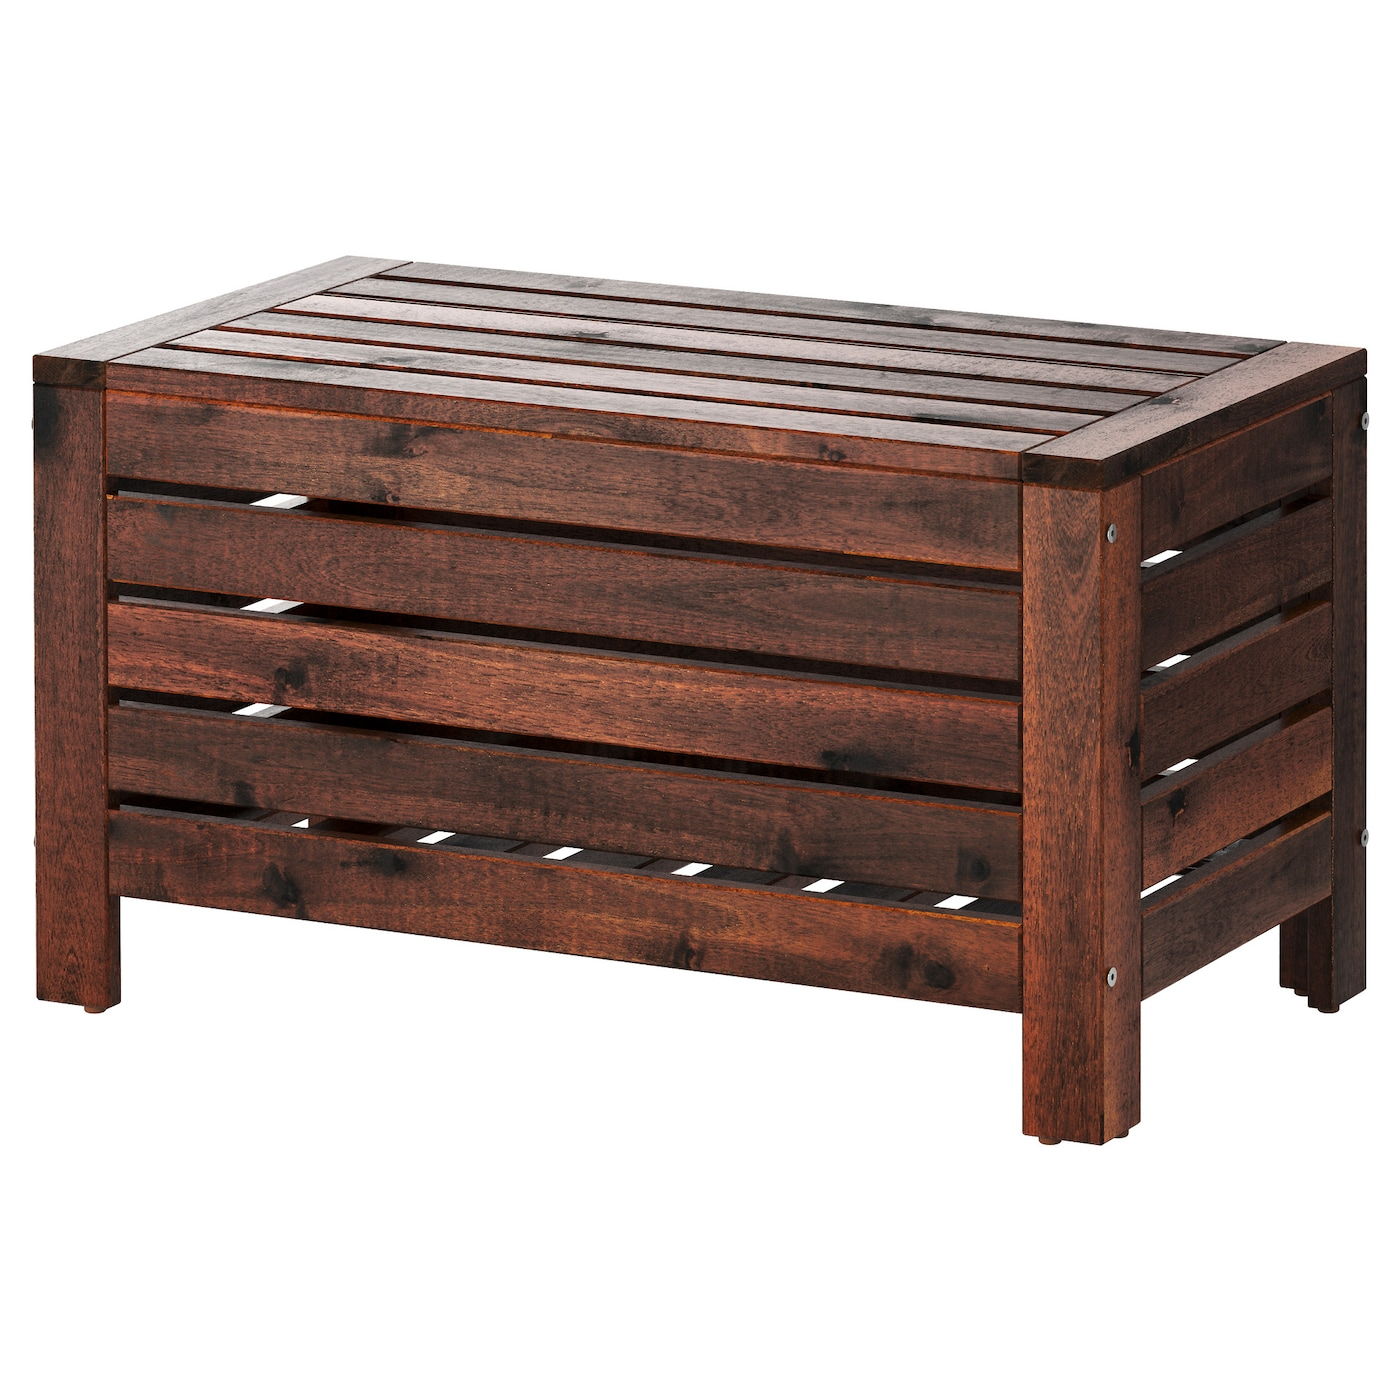 Pplar storage bench outdoor brown stained 80x41 cm ikea - Ikea portaspezie ...